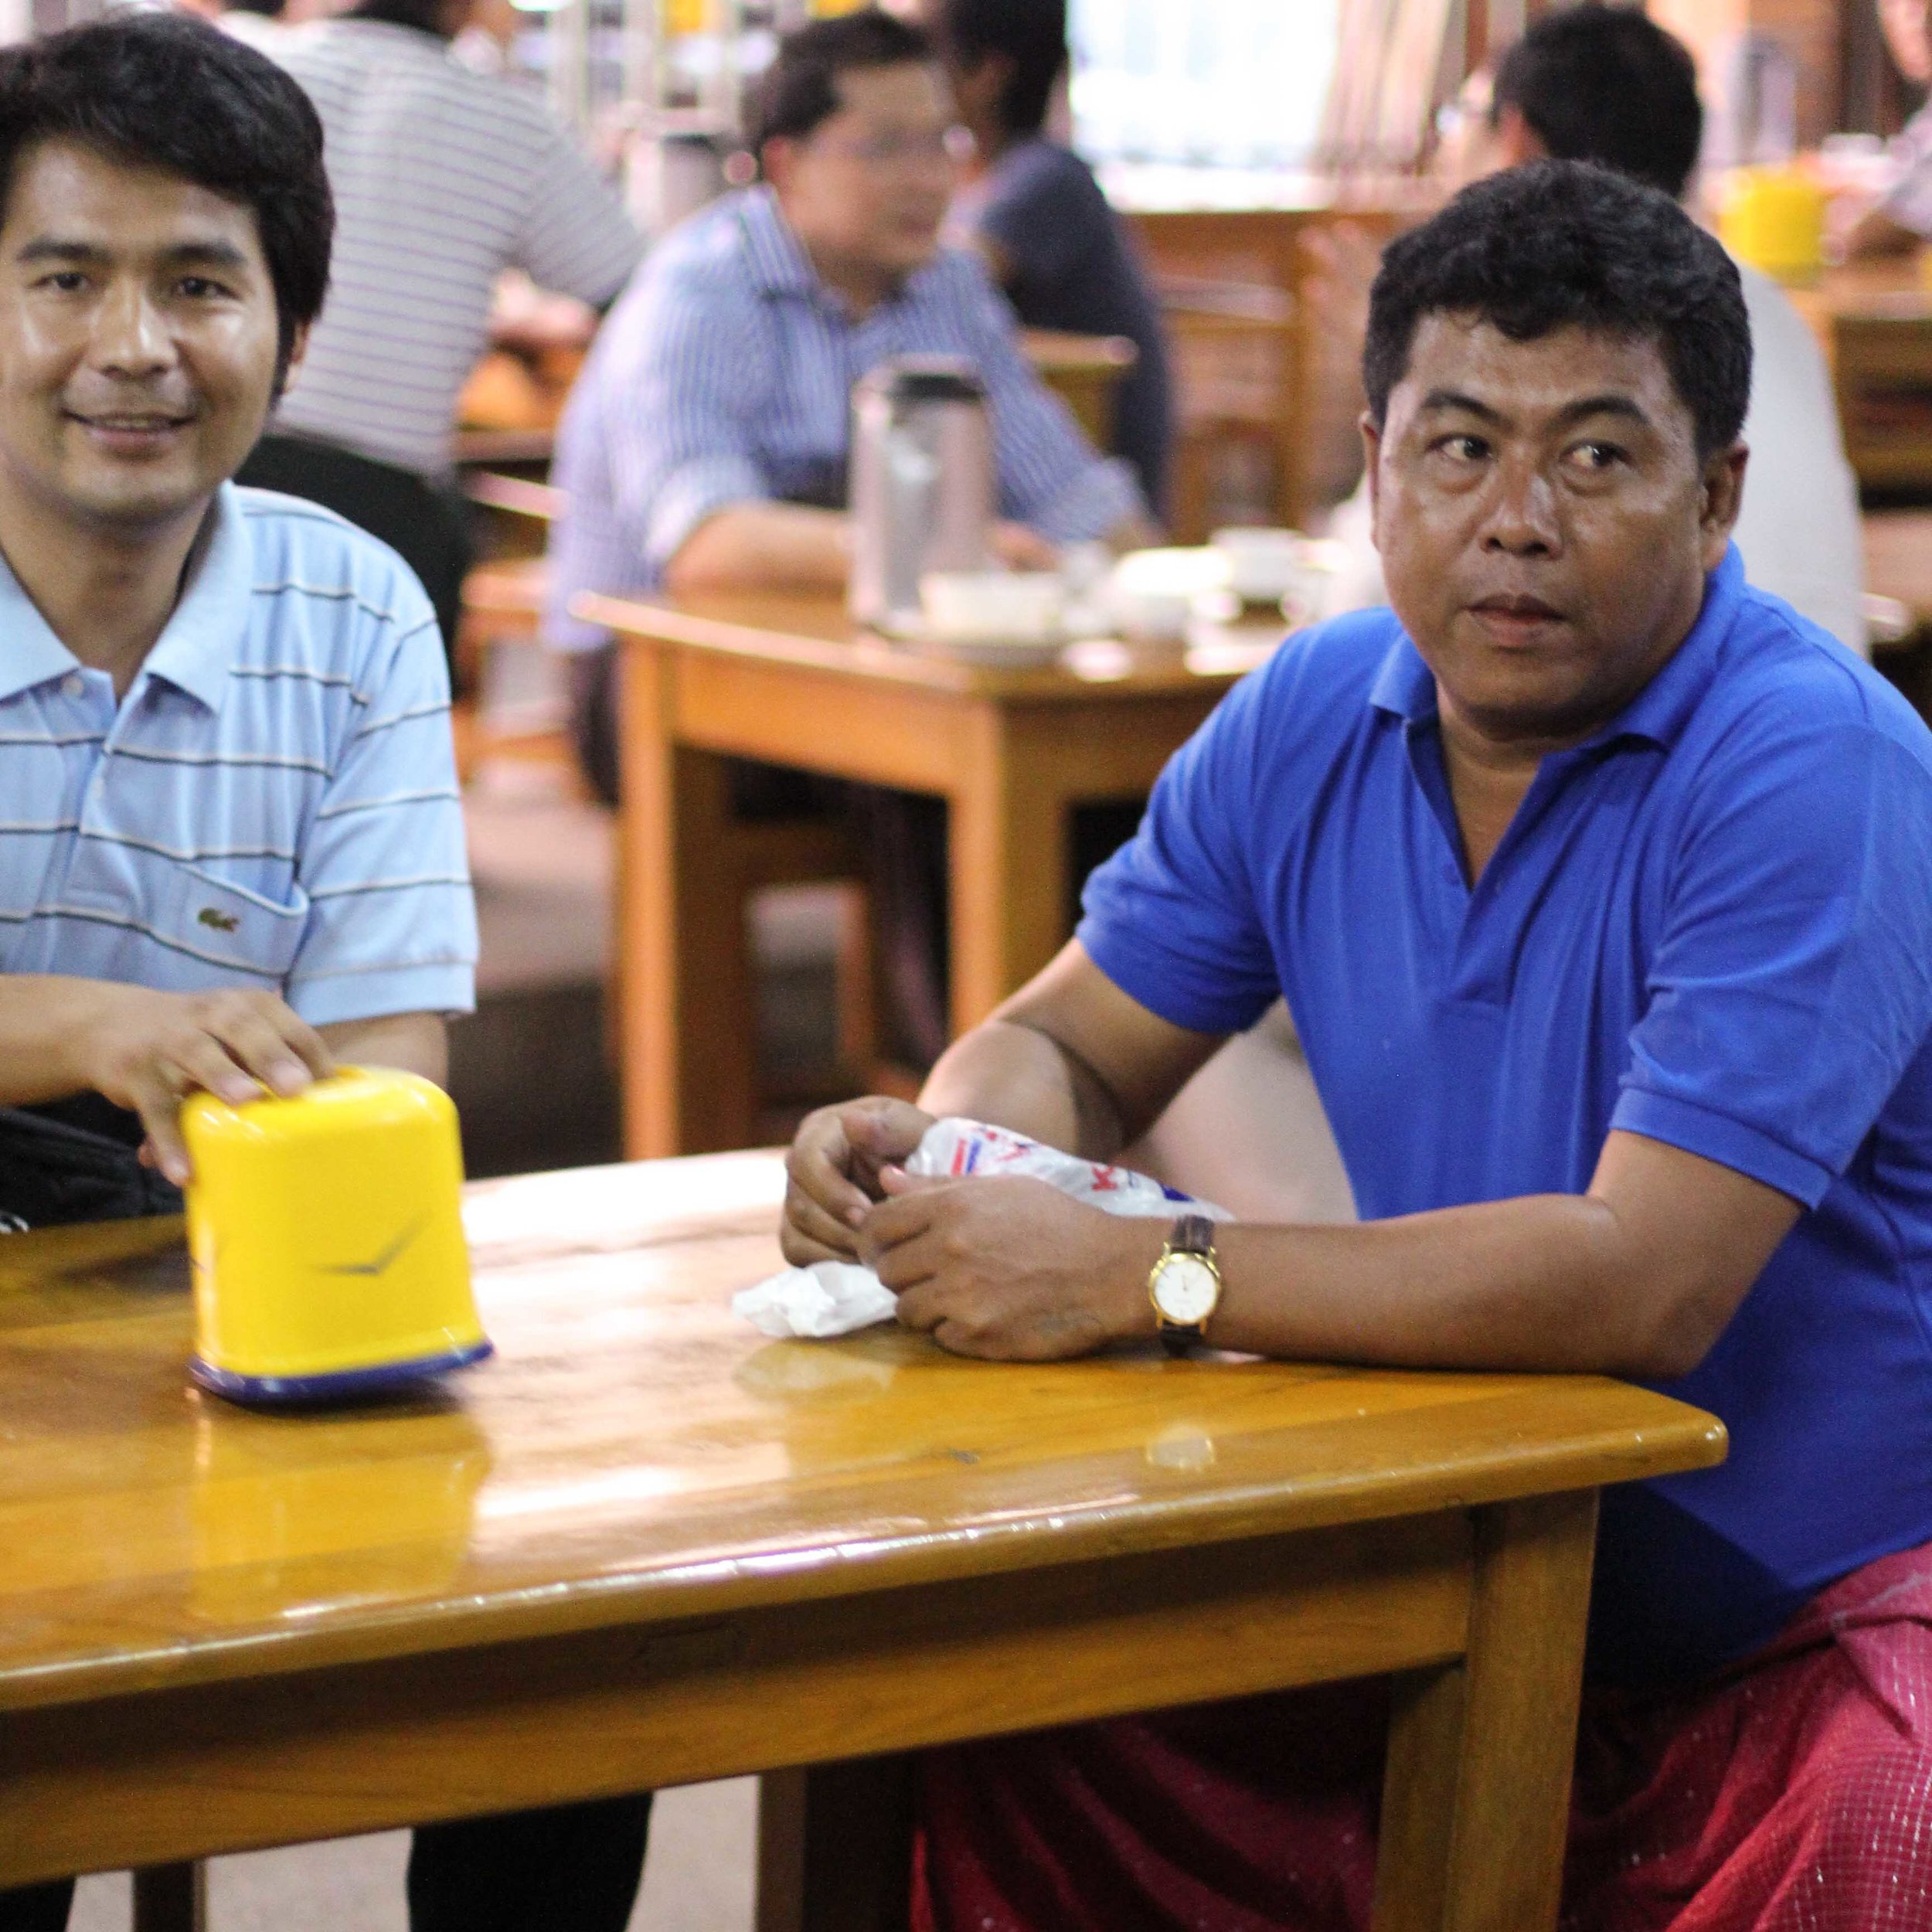 A popular tea shop in Yangon; the man on the right is an expert milk-tea maker and now travels to different tea shops training staff.